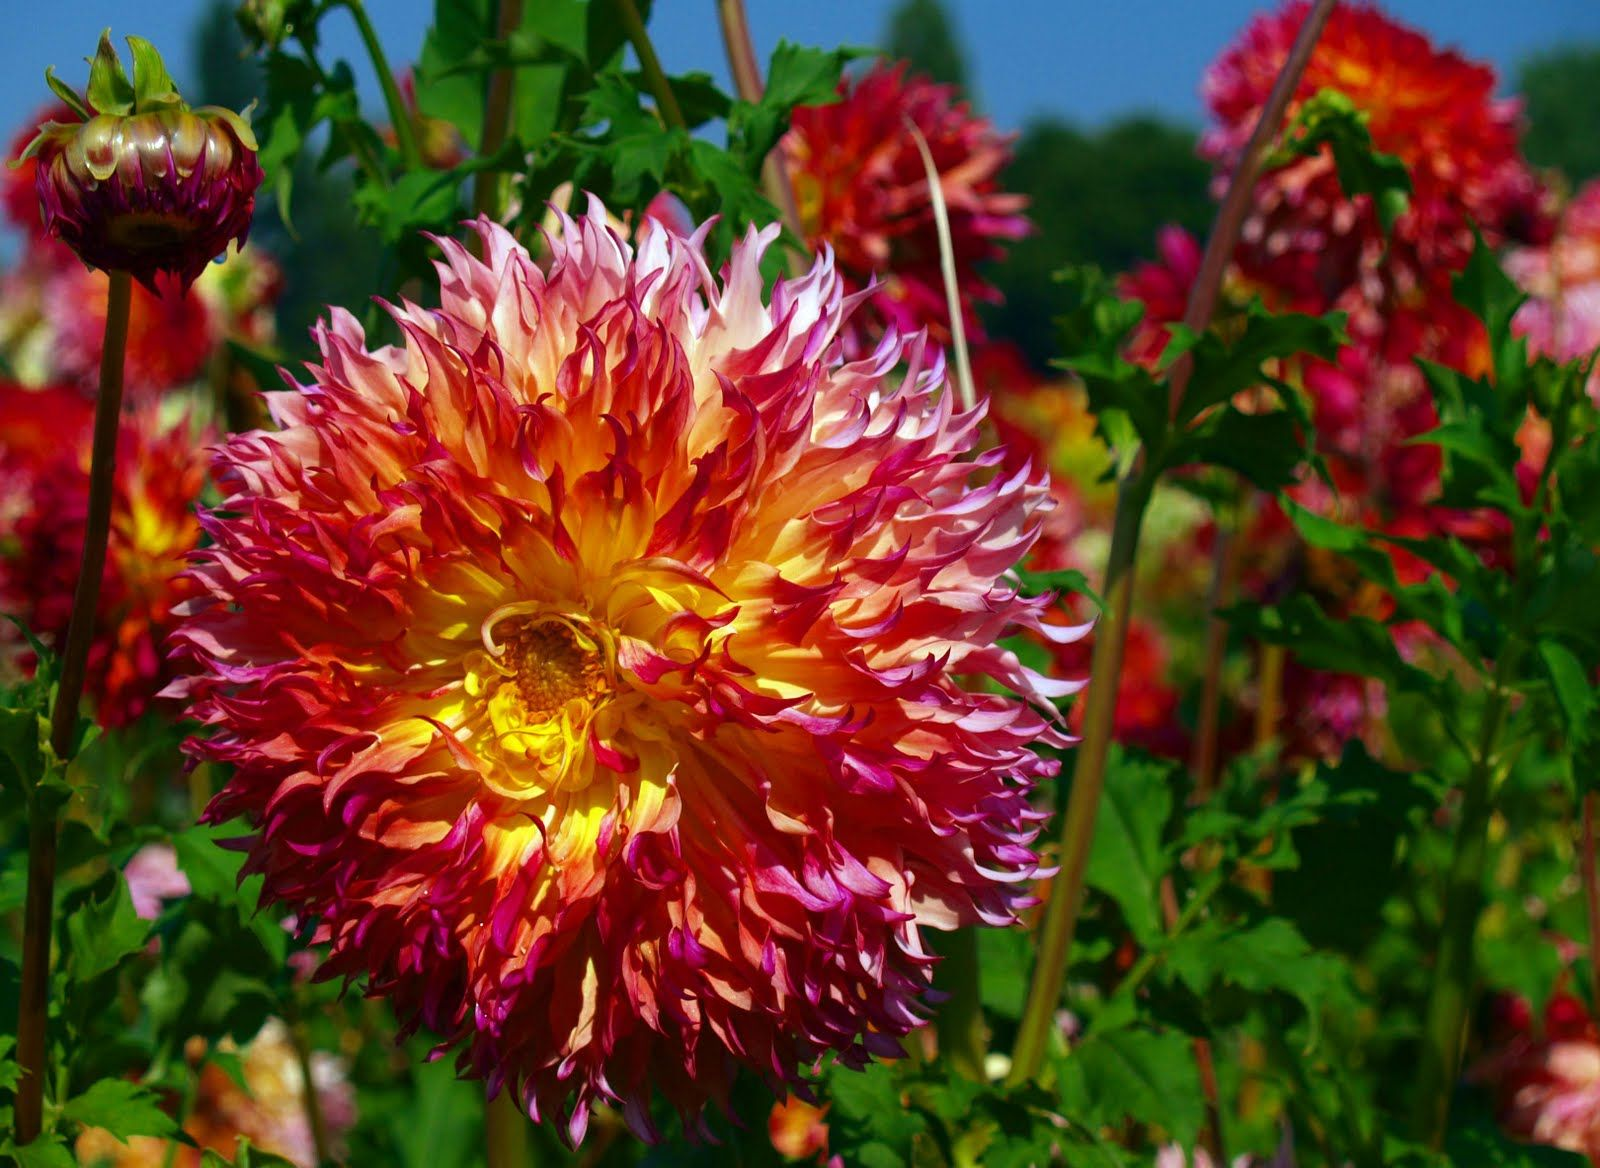 Dahlia Fields Canby Oregon In The Dahlia Festival Is Going On